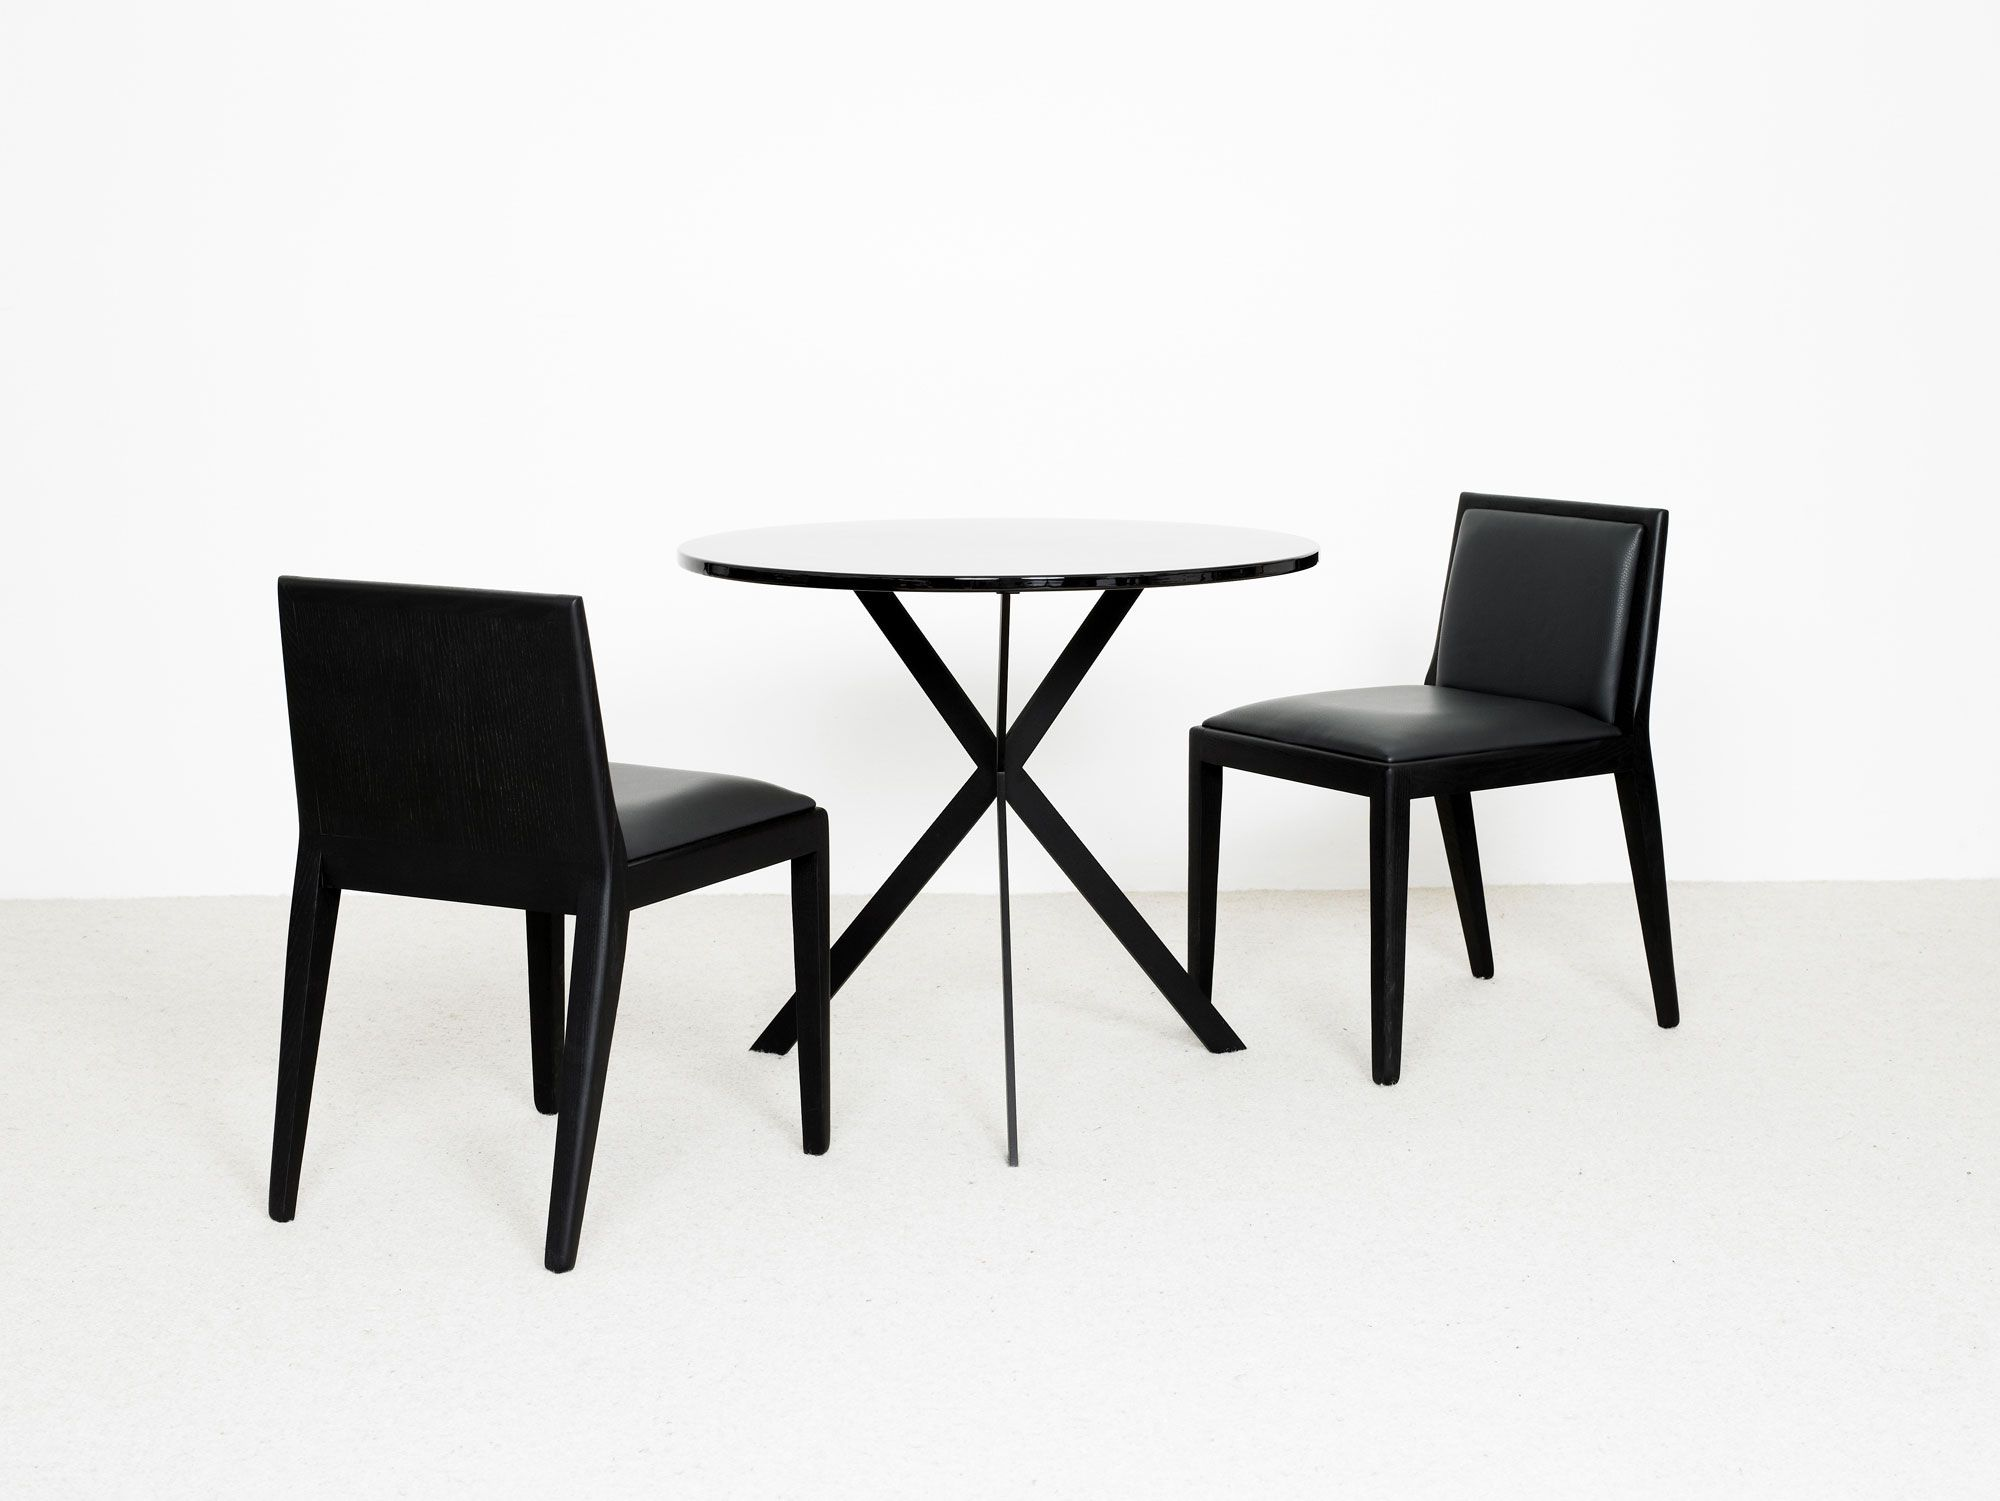 Costantini Sedie ~ Table ile ronde chaise eol christophe delcourt chairs